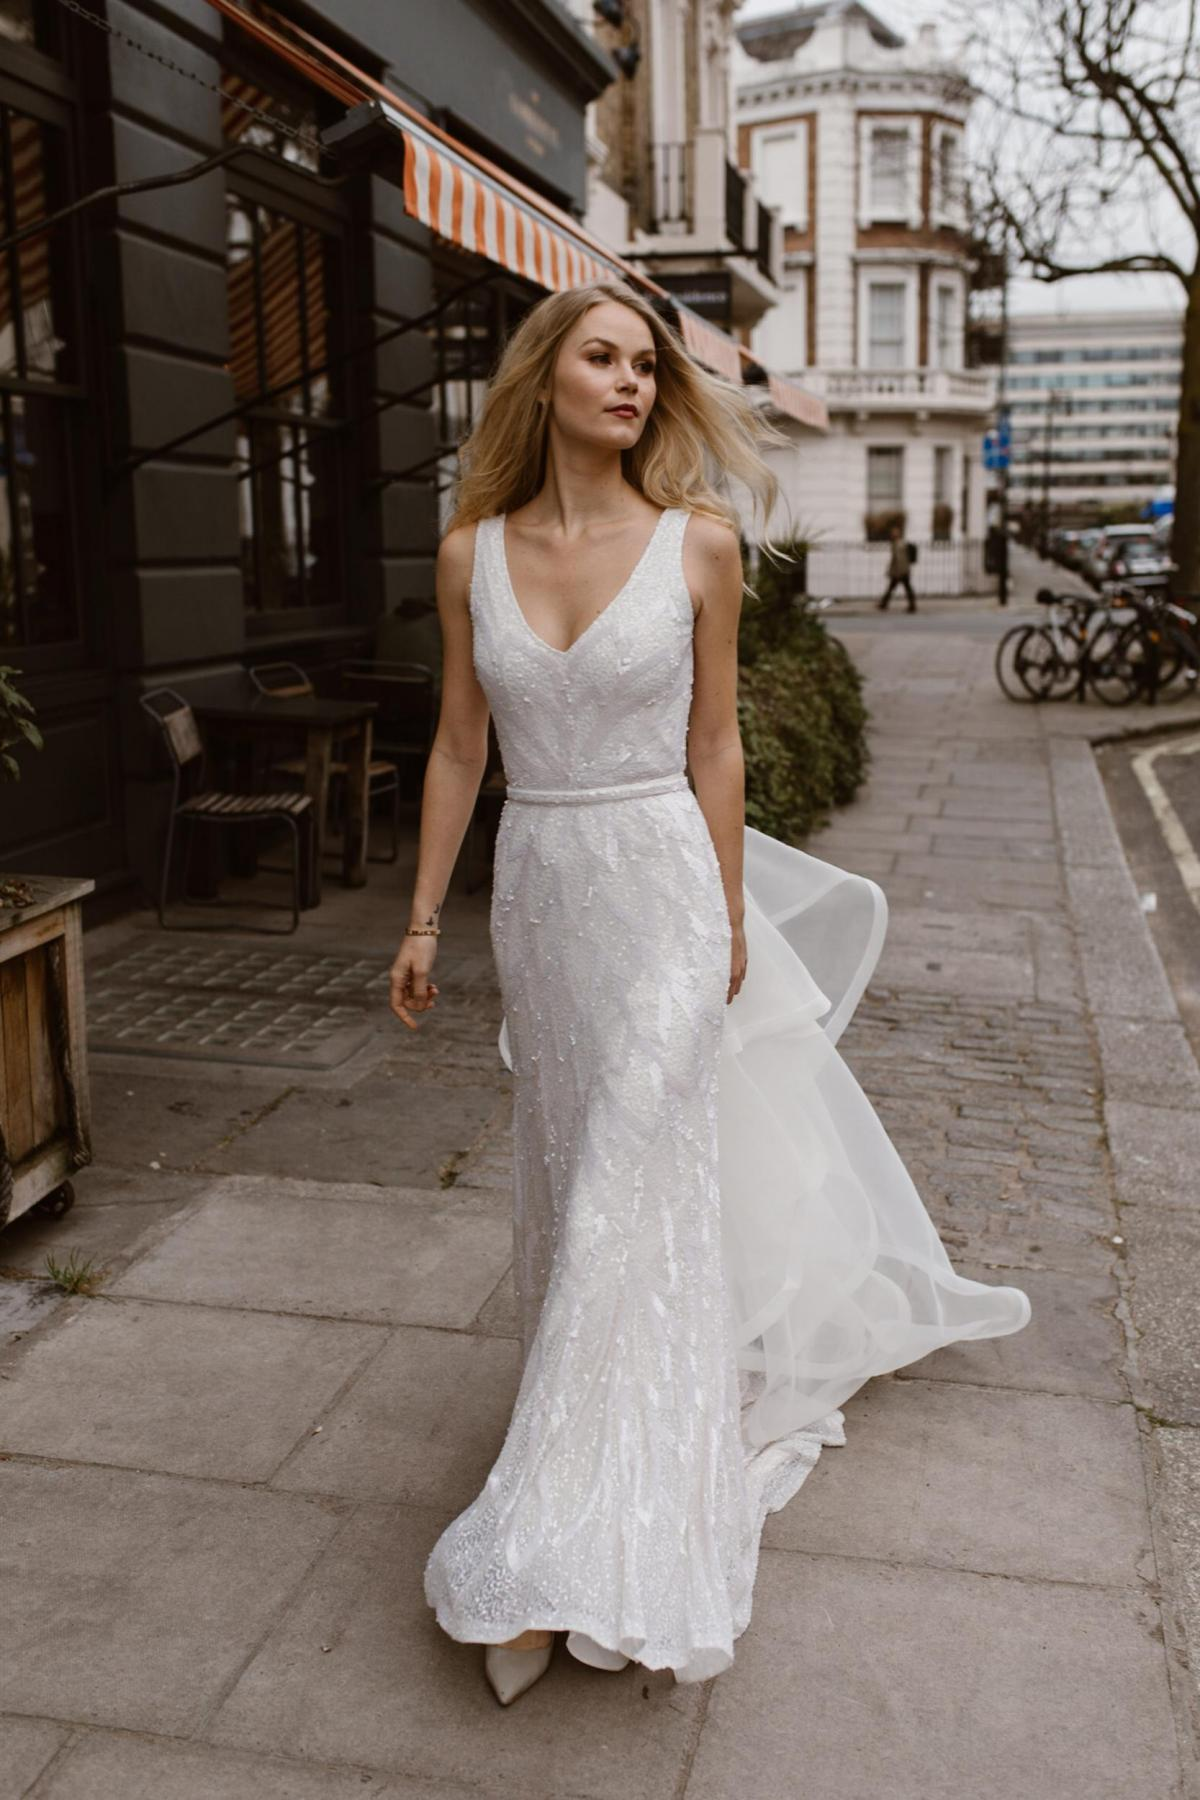 The Rhiannon gown by Karen Willis Holmes, v-neck beaded wedding dress shown with detachable train.